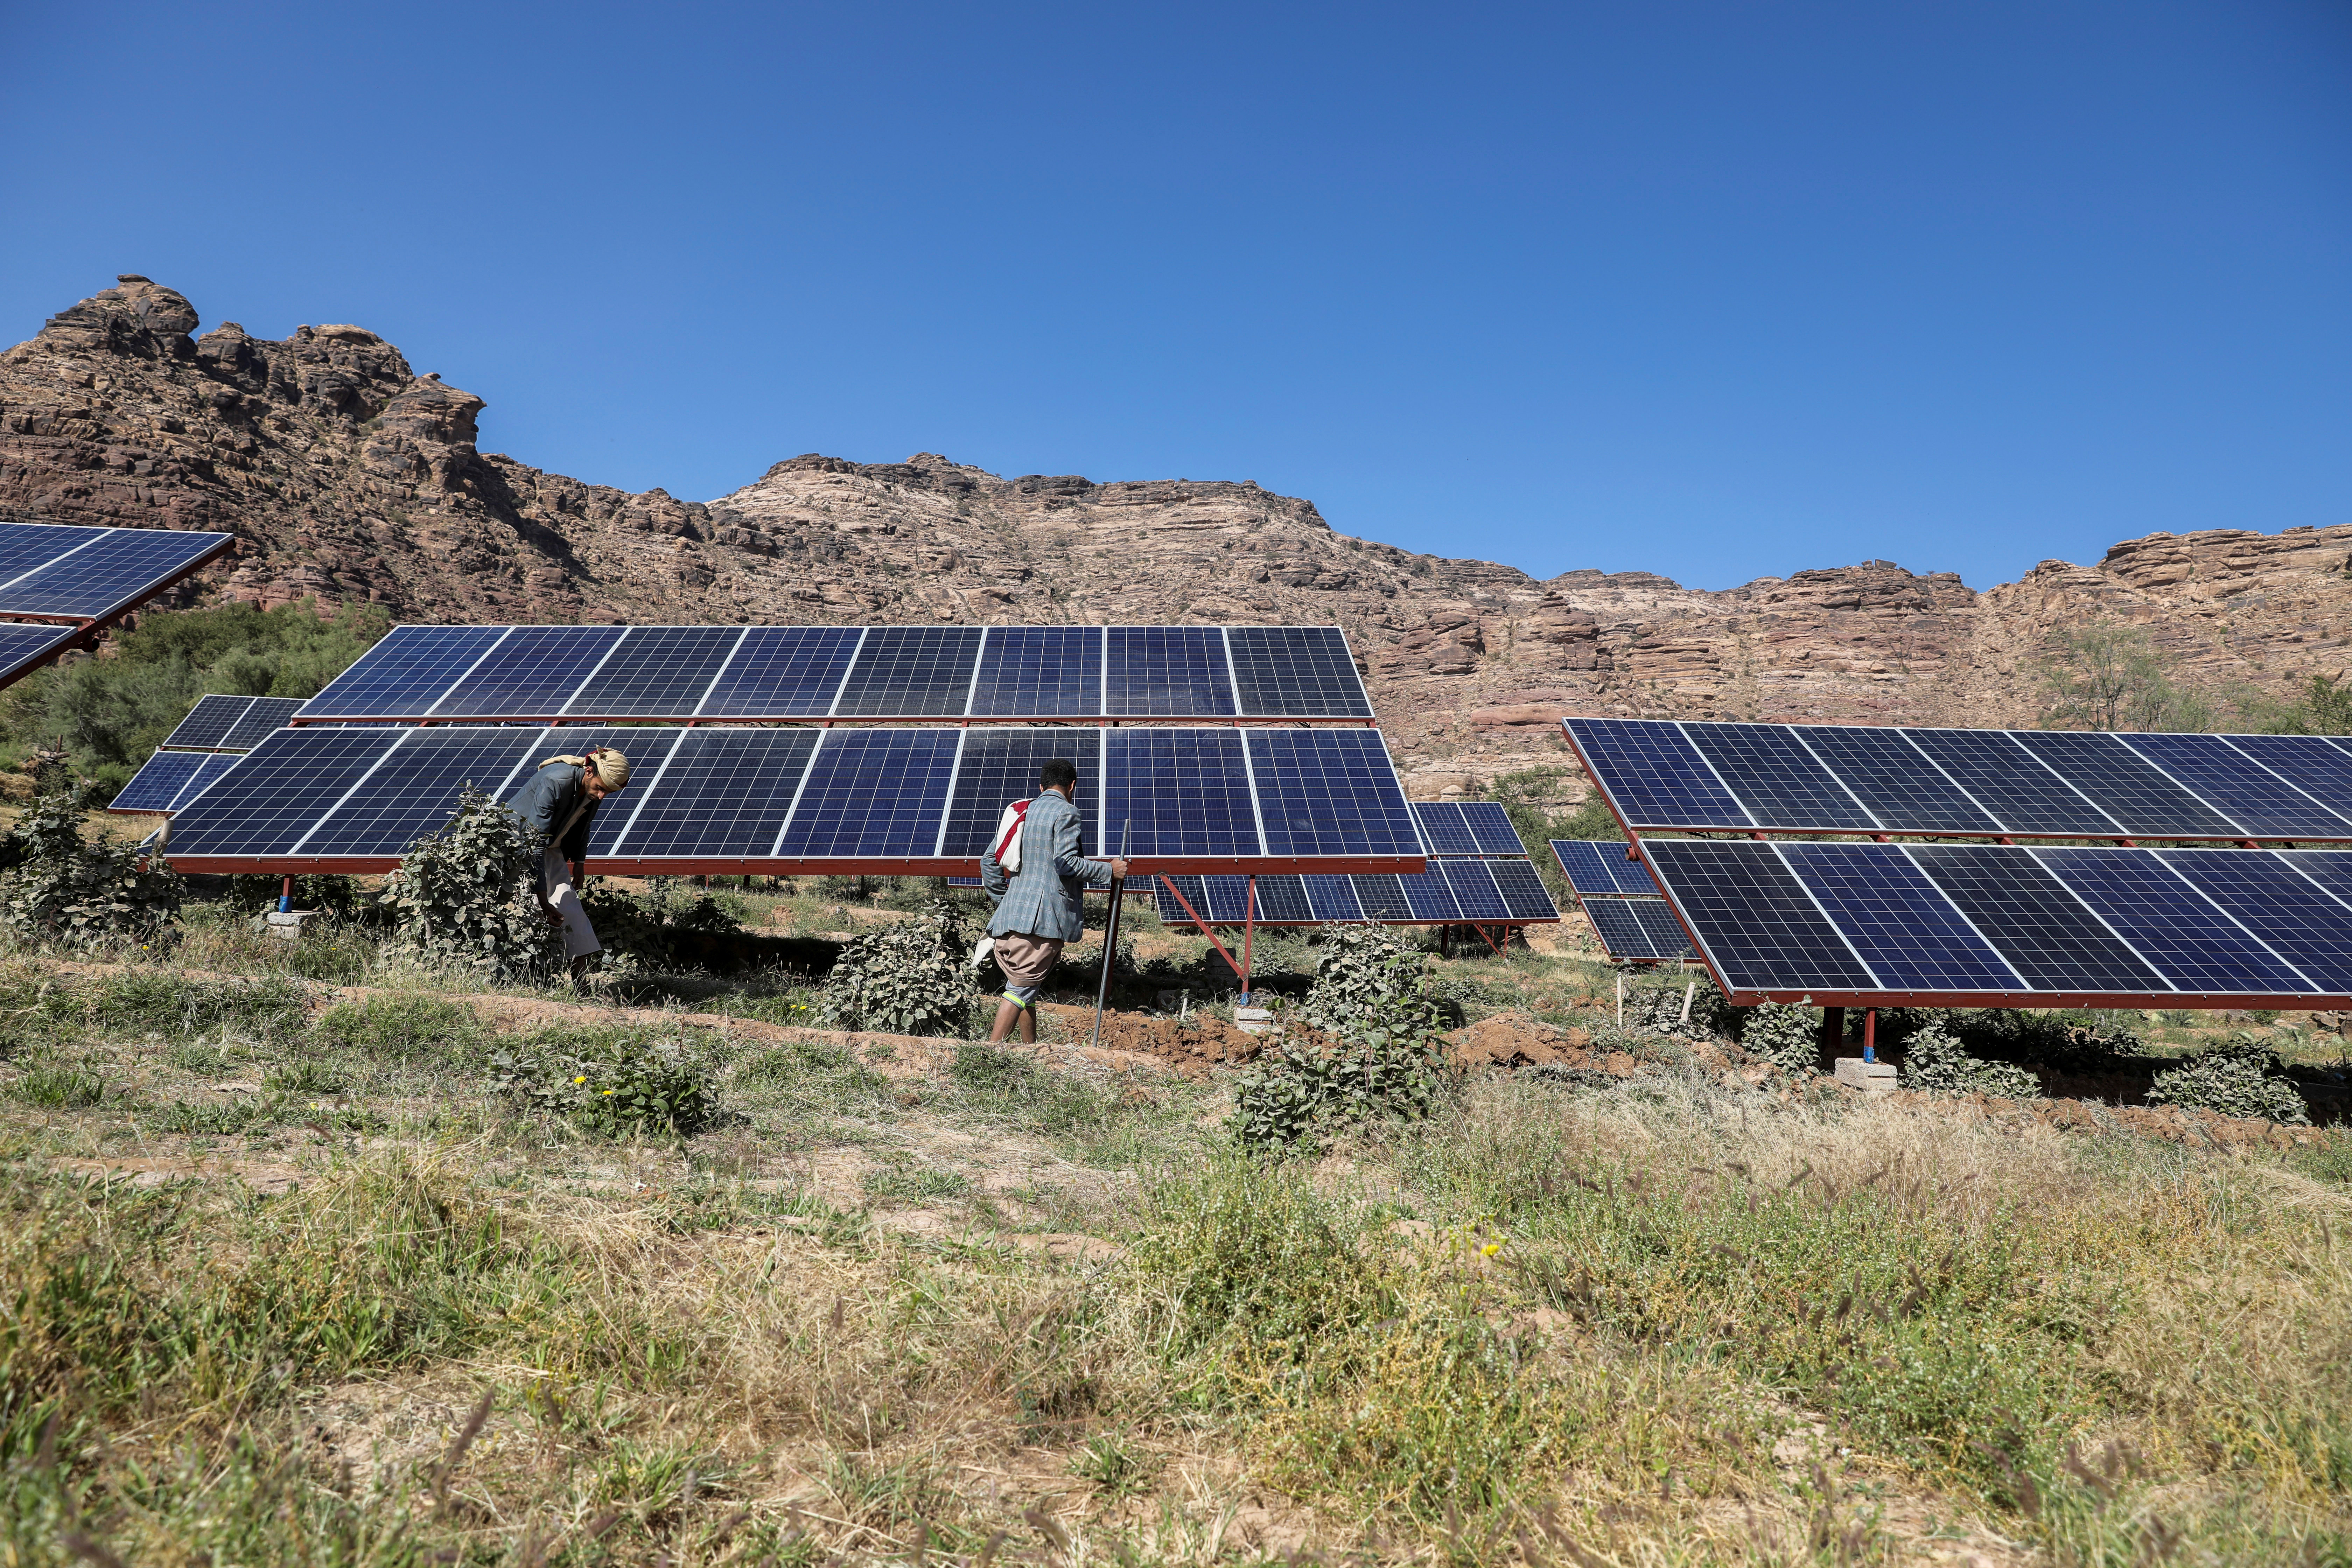 Farmers work next to solar panels at a farmland in Wadi Dhahr near Sanaa, Yemen October 28, 2019. Picture taken October 28, 2019. REUTERS/Khaled Abdullah - RC21DD9BIQVV